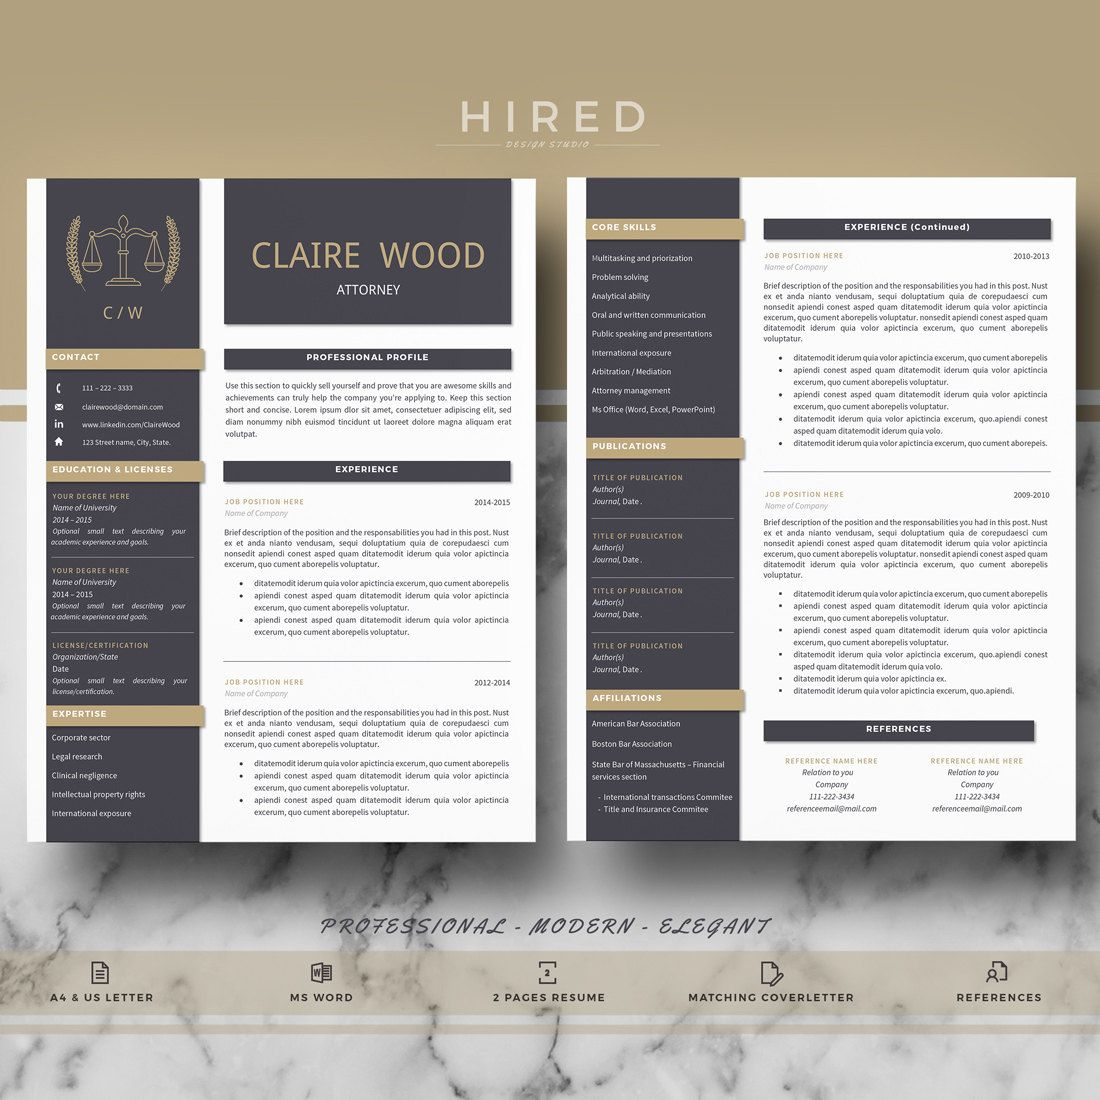 Attorney Resume Template | Lawyer Resume | Legal Resume, CV | Resume ...